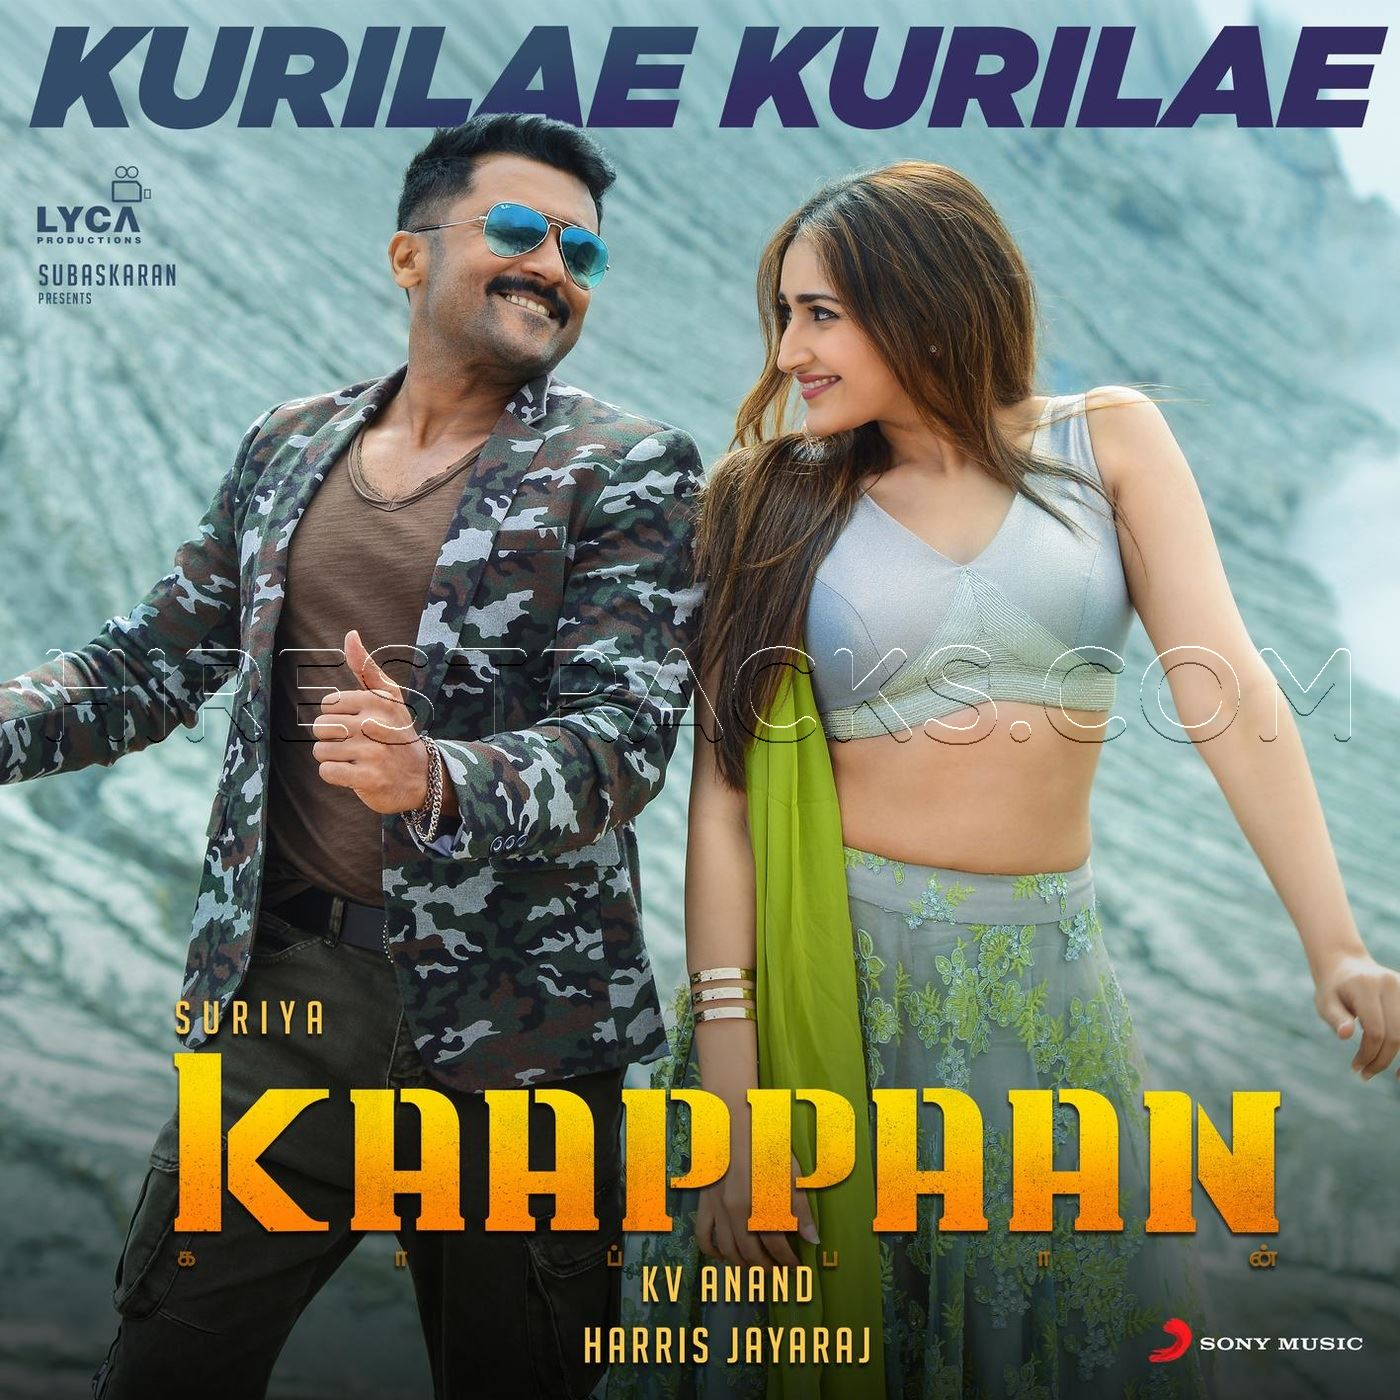 Kurilae Kurilae (From Kaappaan) (2019) (Harris Jayaraj) (Sony Music) [Digital-DL-FLAC]